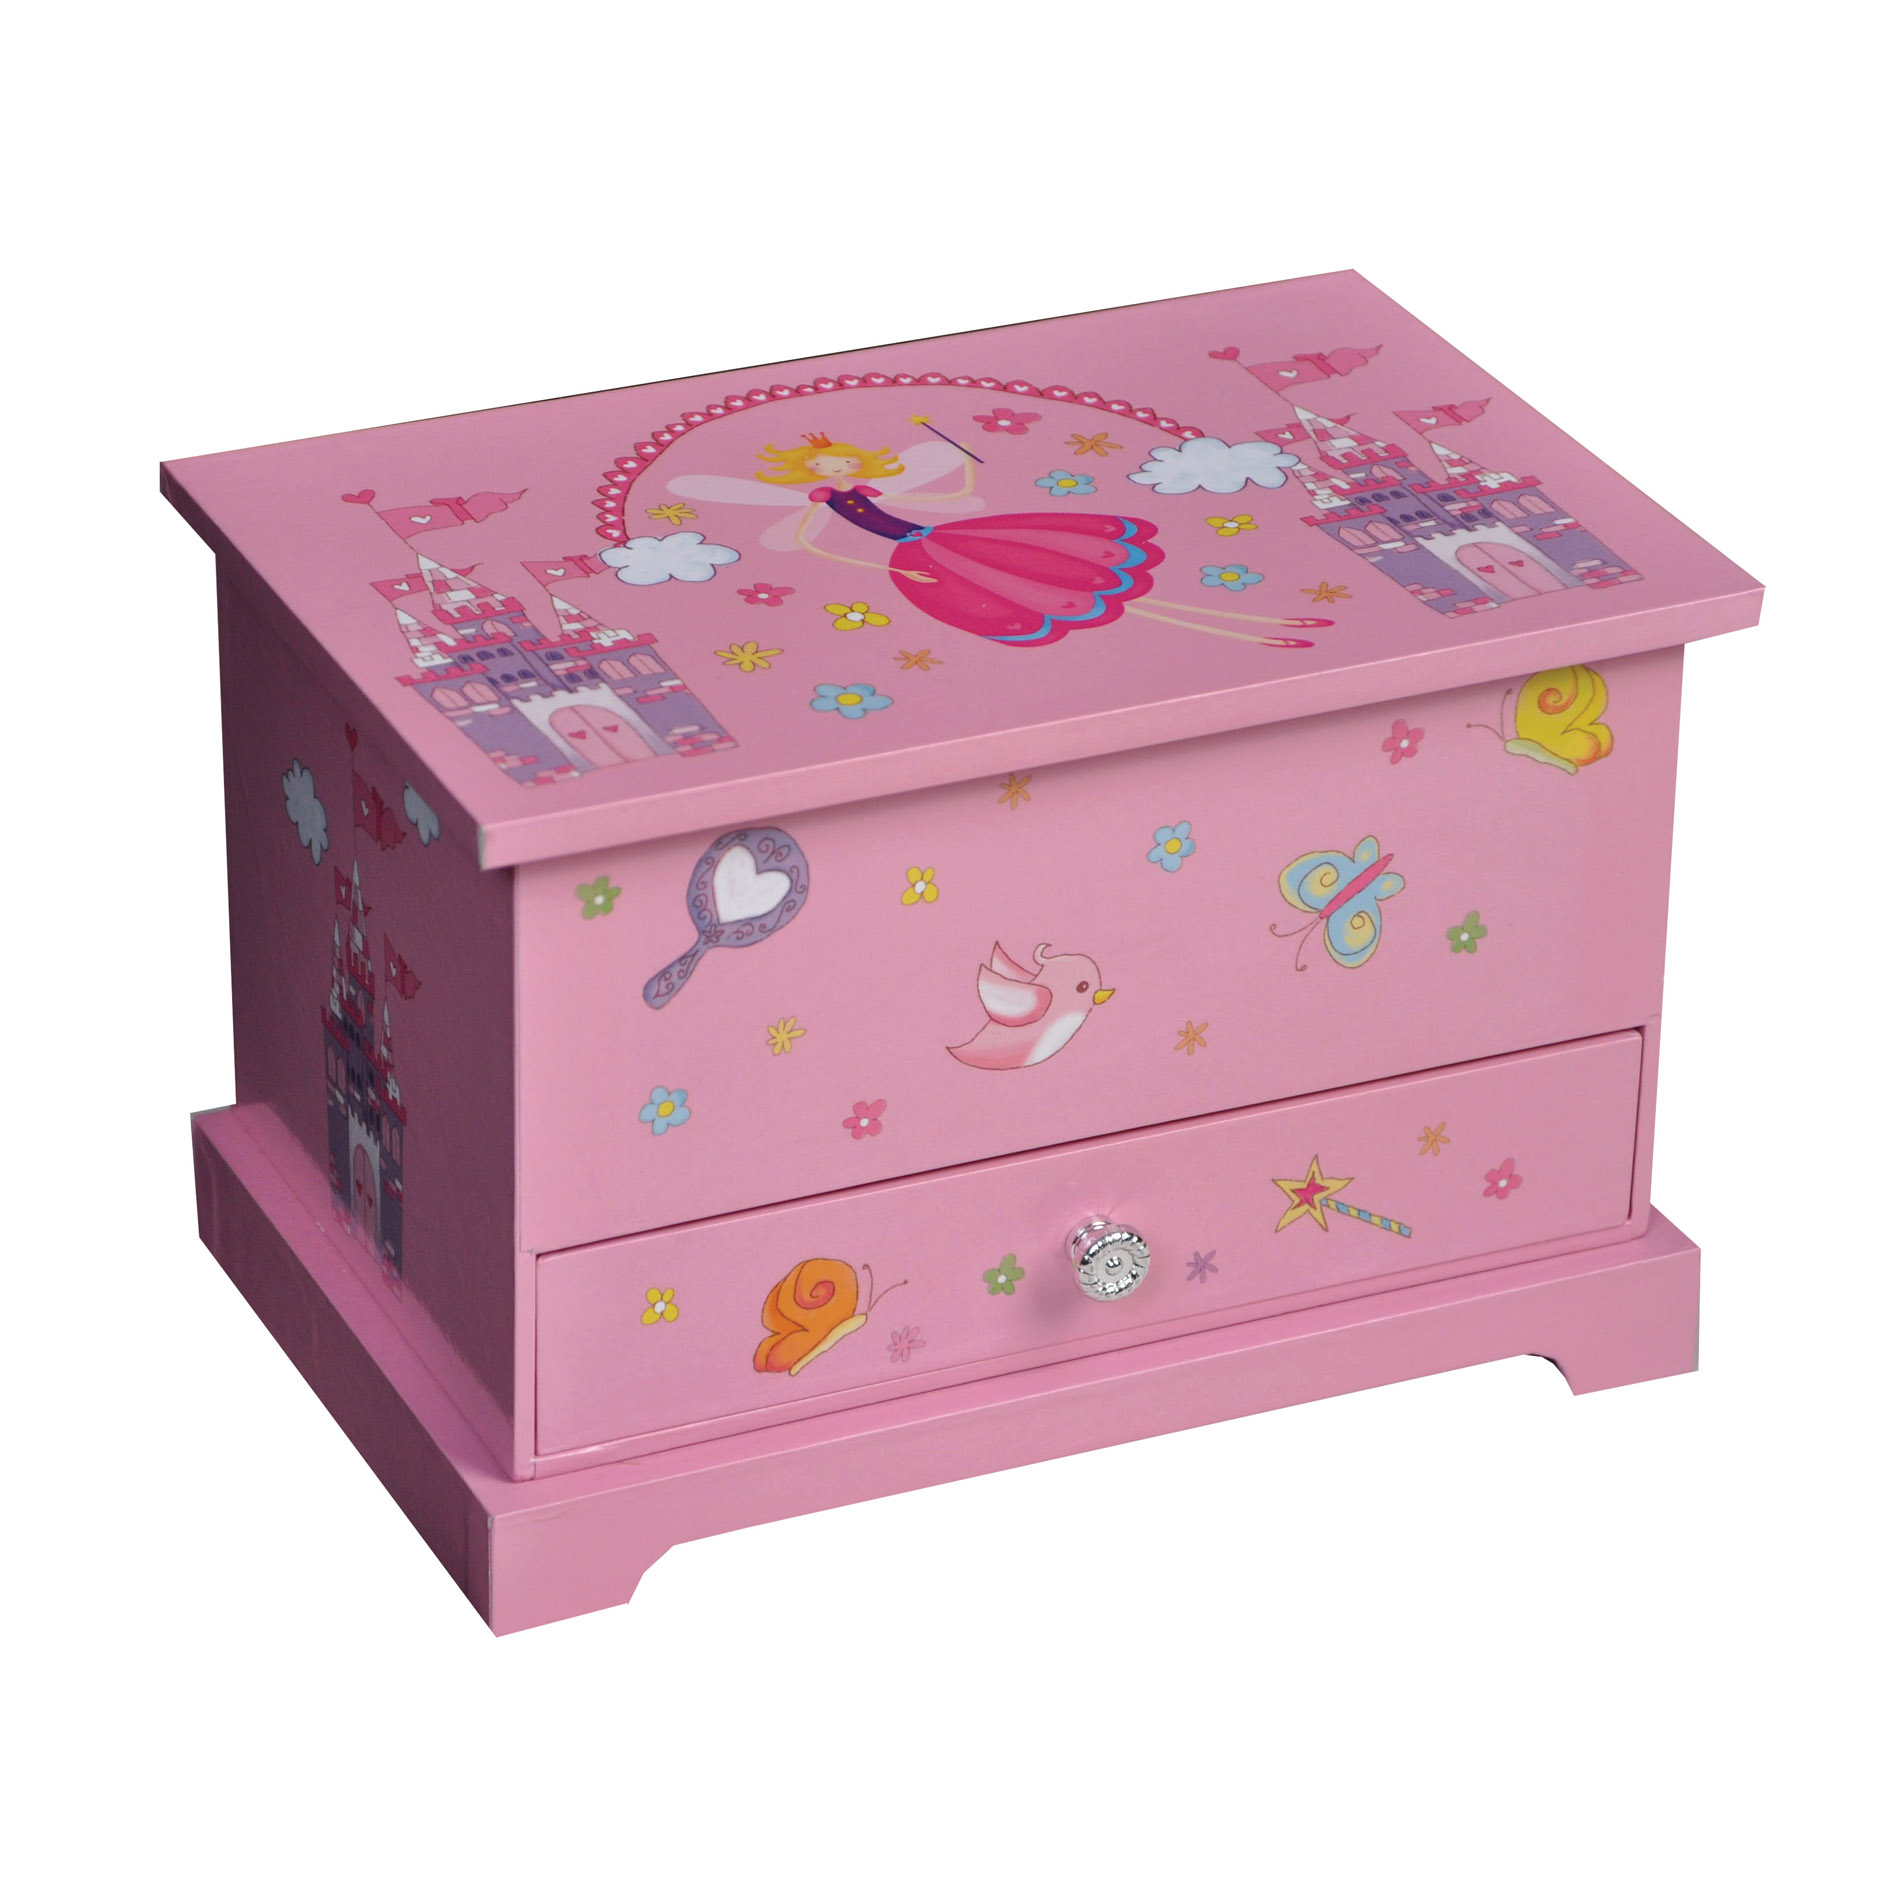 uxcell Kerri Girl's Musical Ballerina Jewelry box